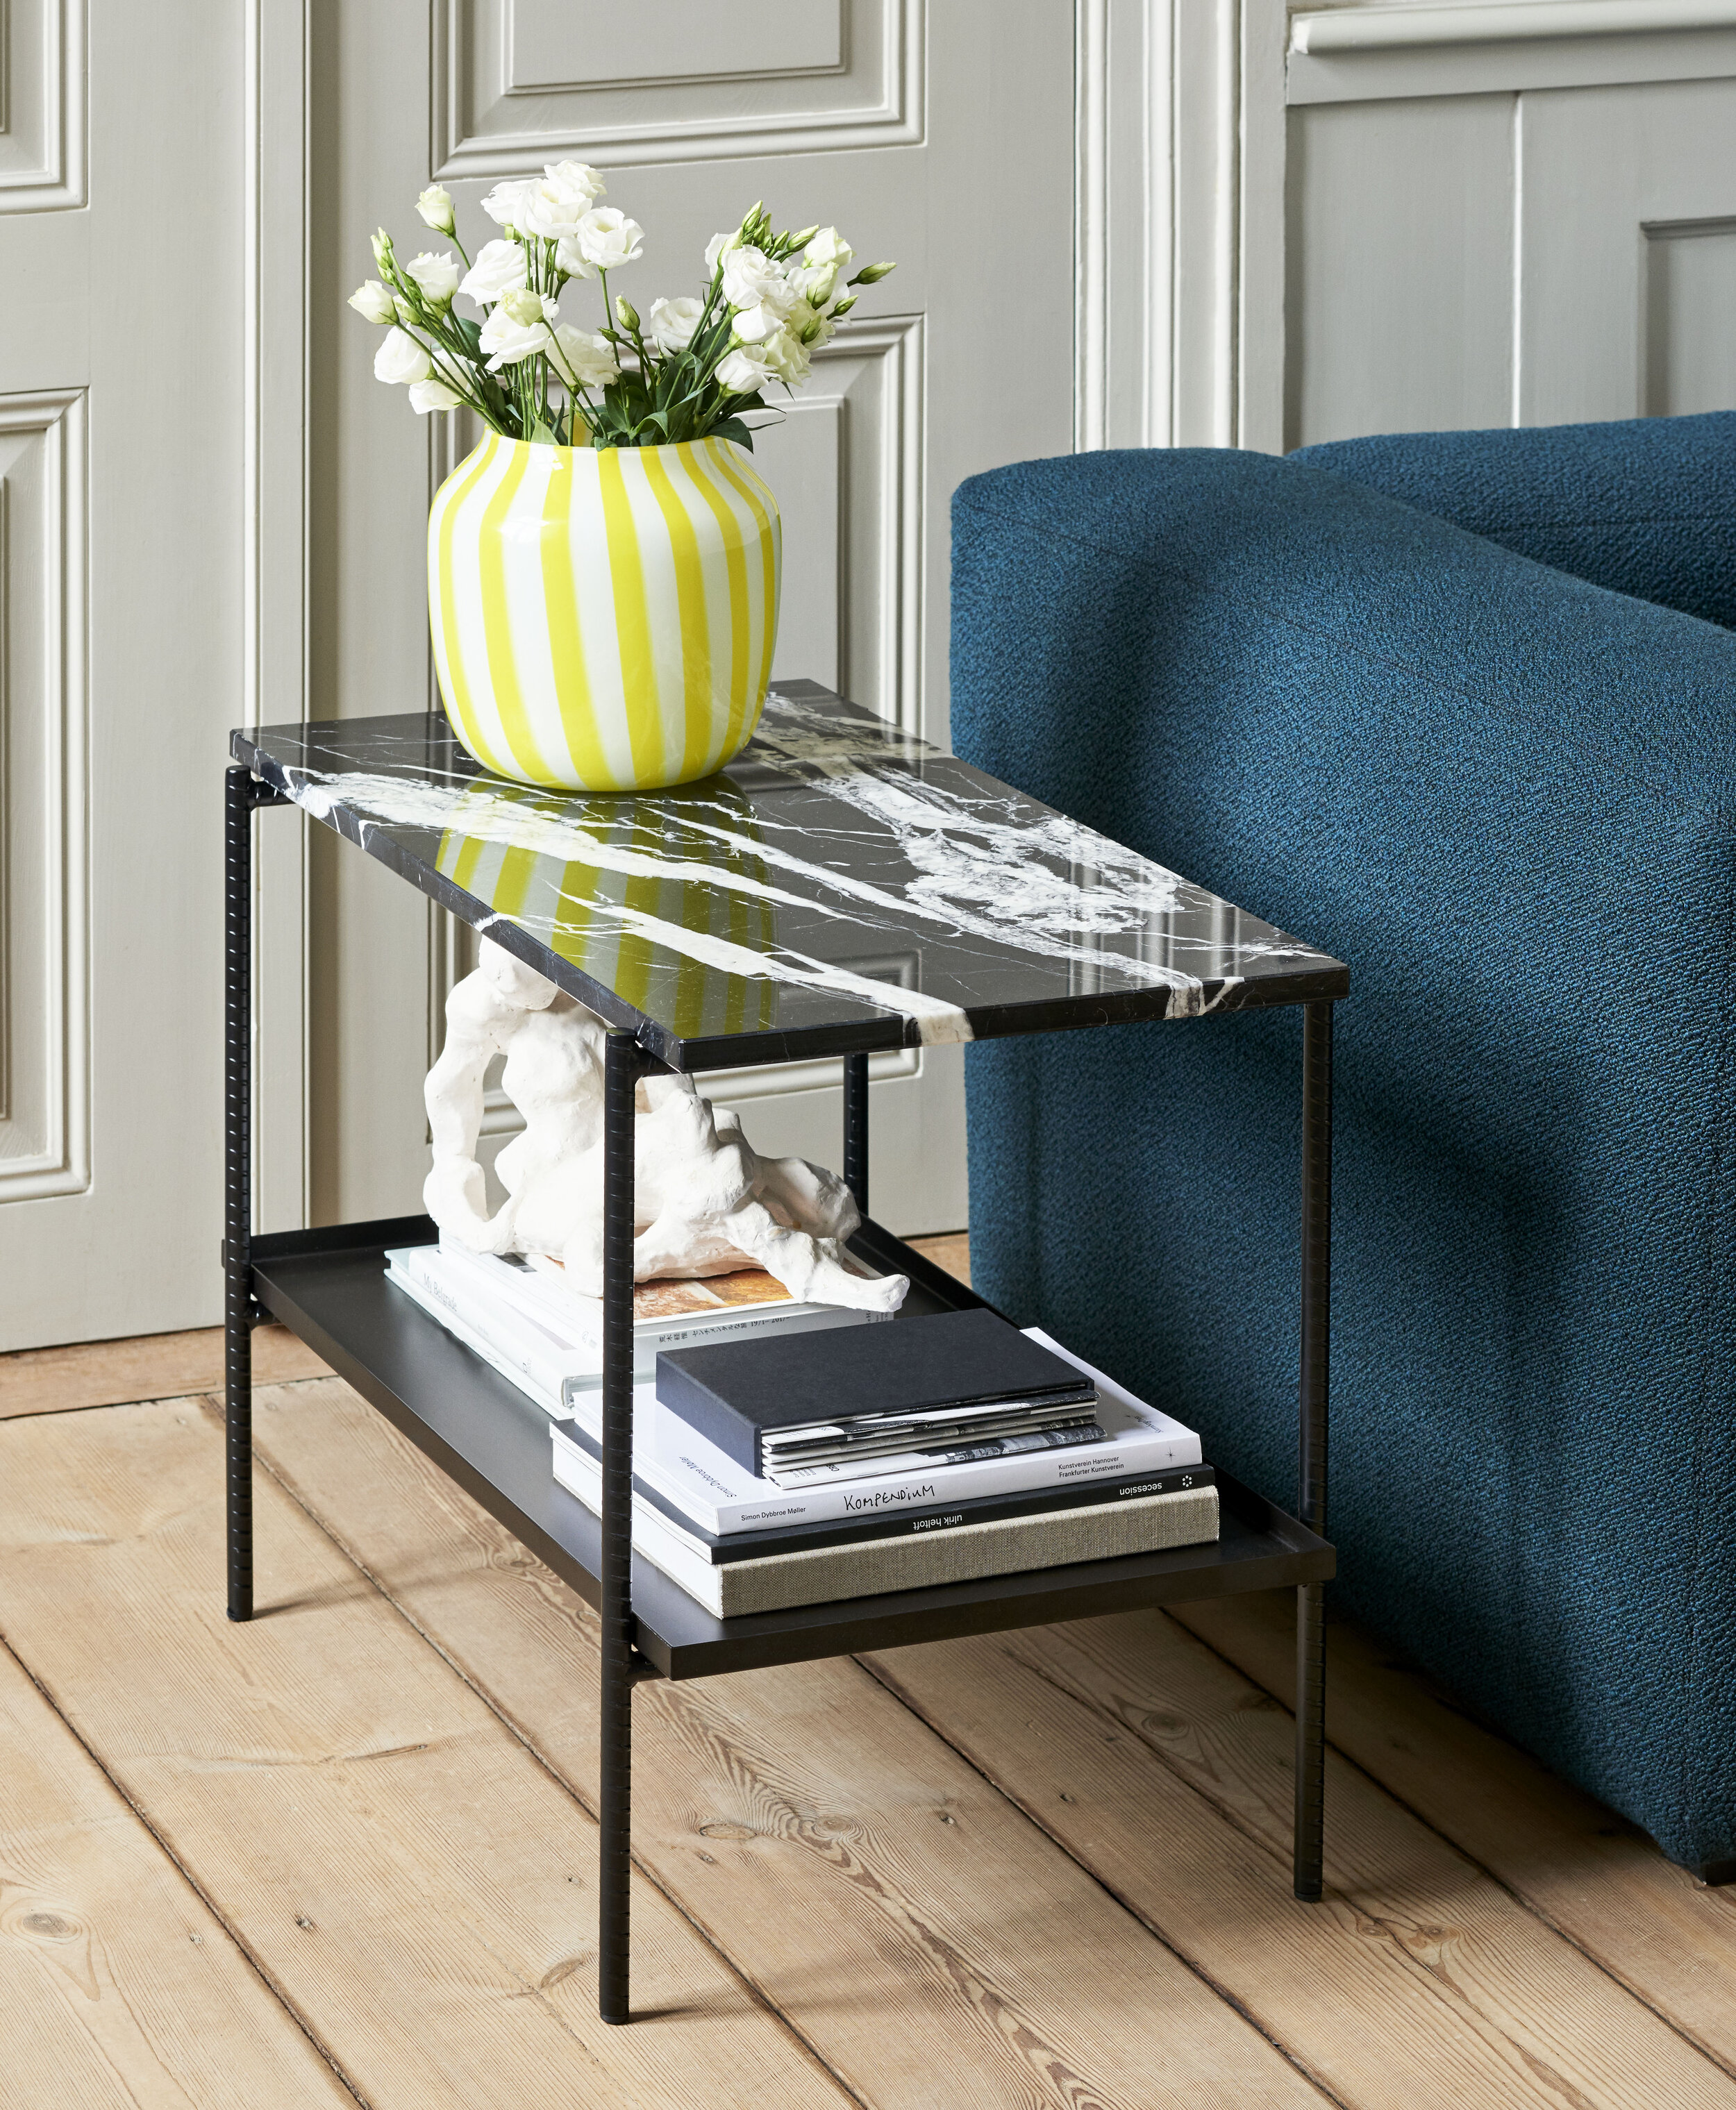 Rebar Side Table soft black w marble tabletop_Mags 2,5 seater Flamiber petrol blue J4_Juice Vase wide yellow.jpg